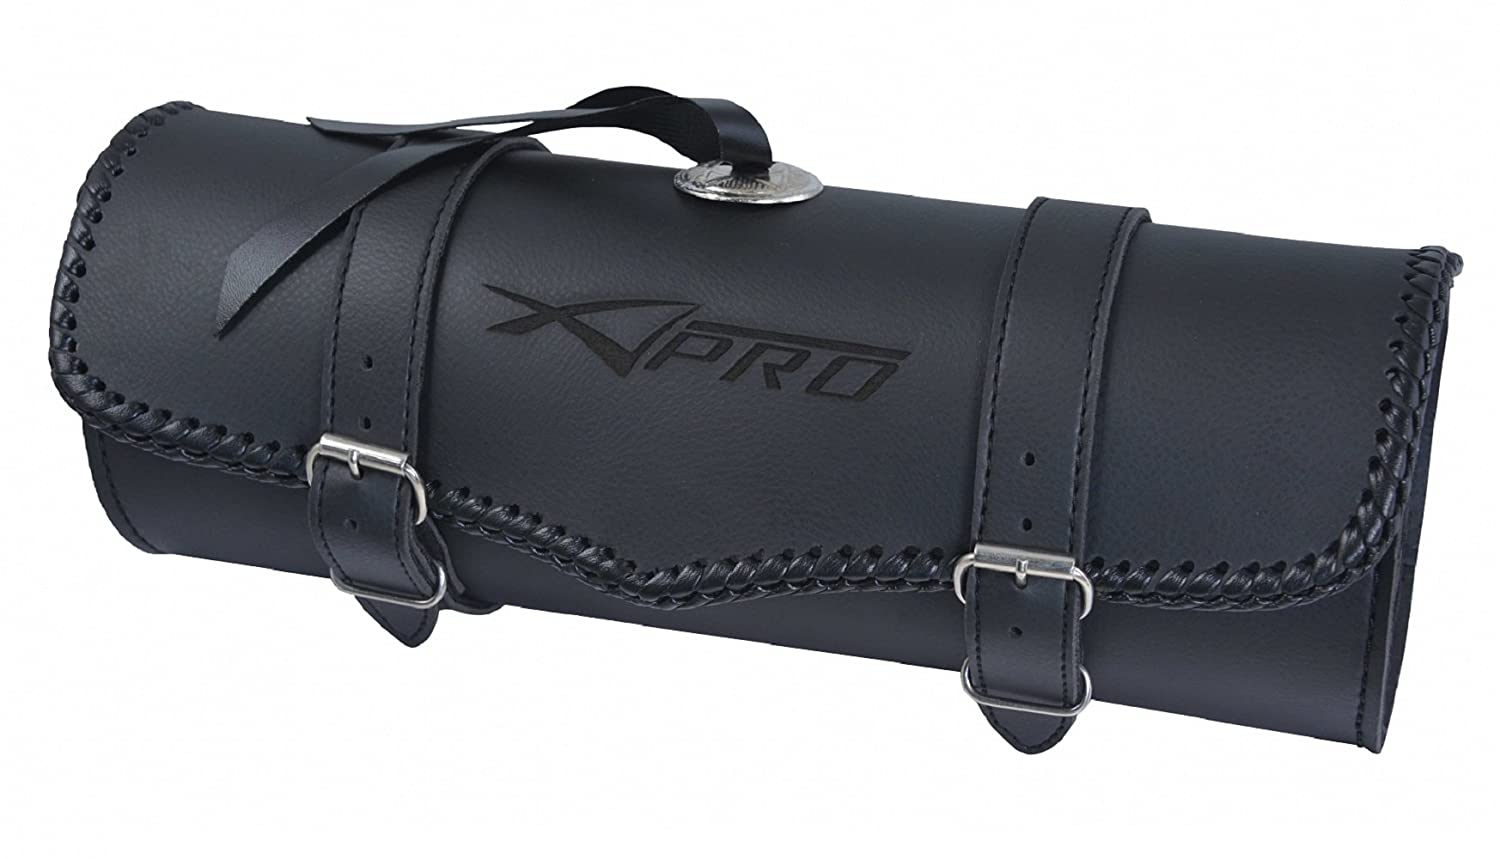 A-Pro Fait Main Genuine Customized Saddle Bag Moto Motorbike Deluxe Tool Roll 5180000034771